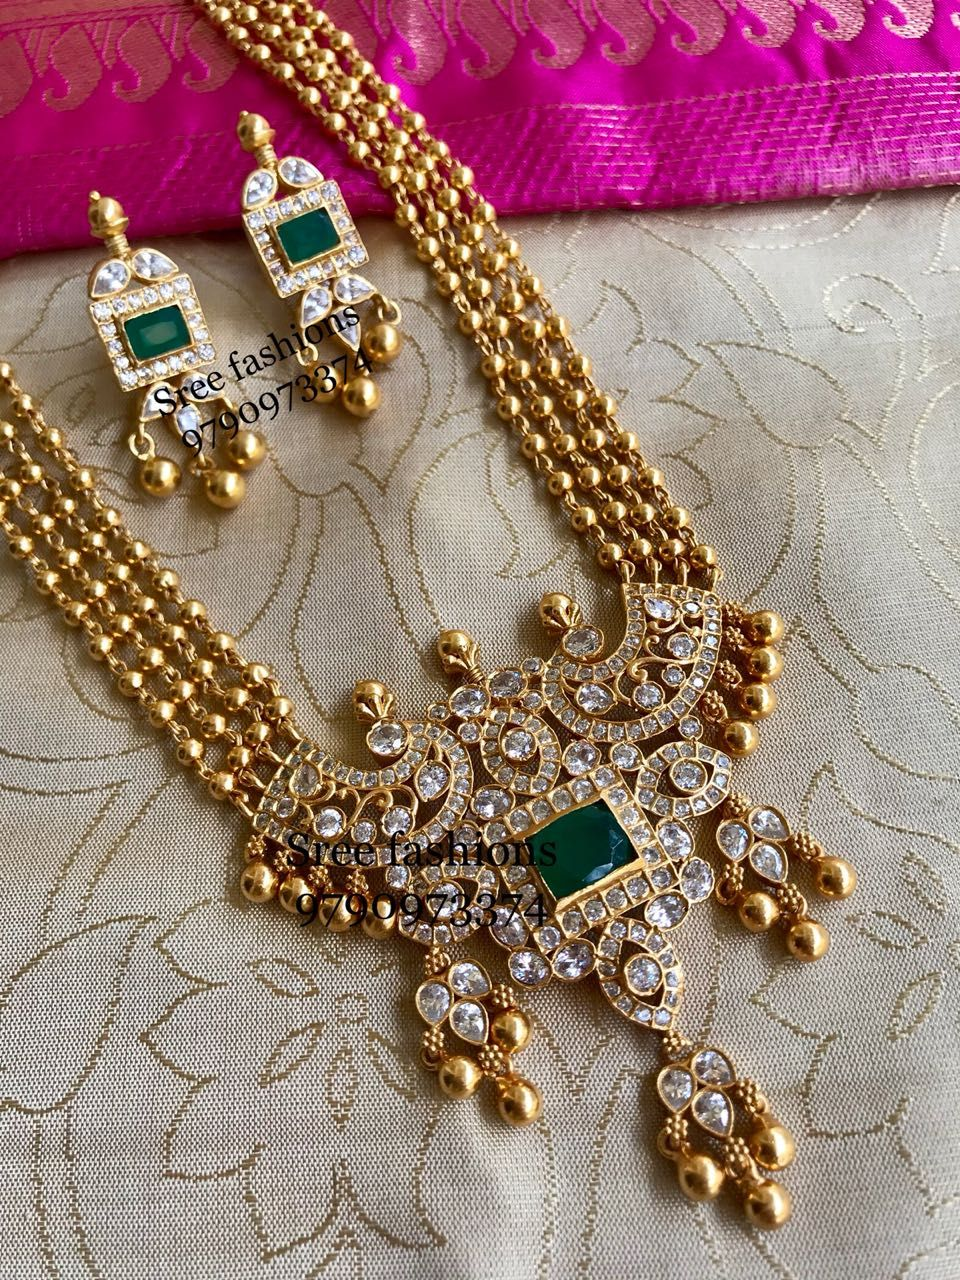 Where To Sell Gold Jewelry For Best Price Near Me : where, jewelry, price, Indian, Jewellery, Designs, South, India, Jewels, Design, Necklaces,, Jewelry,, Jewelry, Fashion